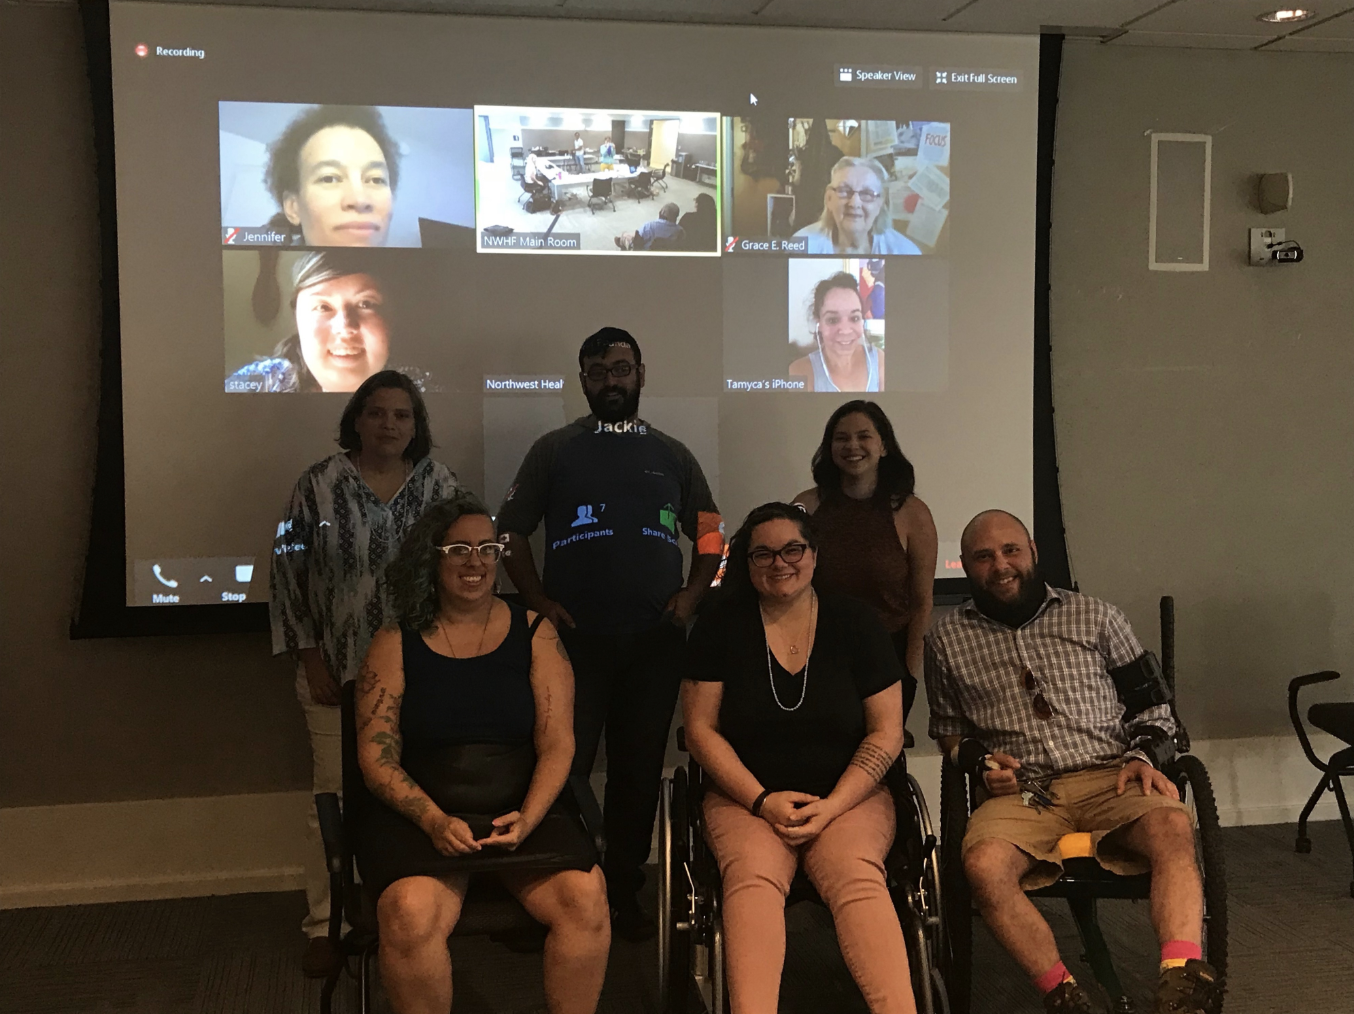 Six people stand and sit in front of a projector screen. Four more people are projected onto the screen from webcams. They all smile.